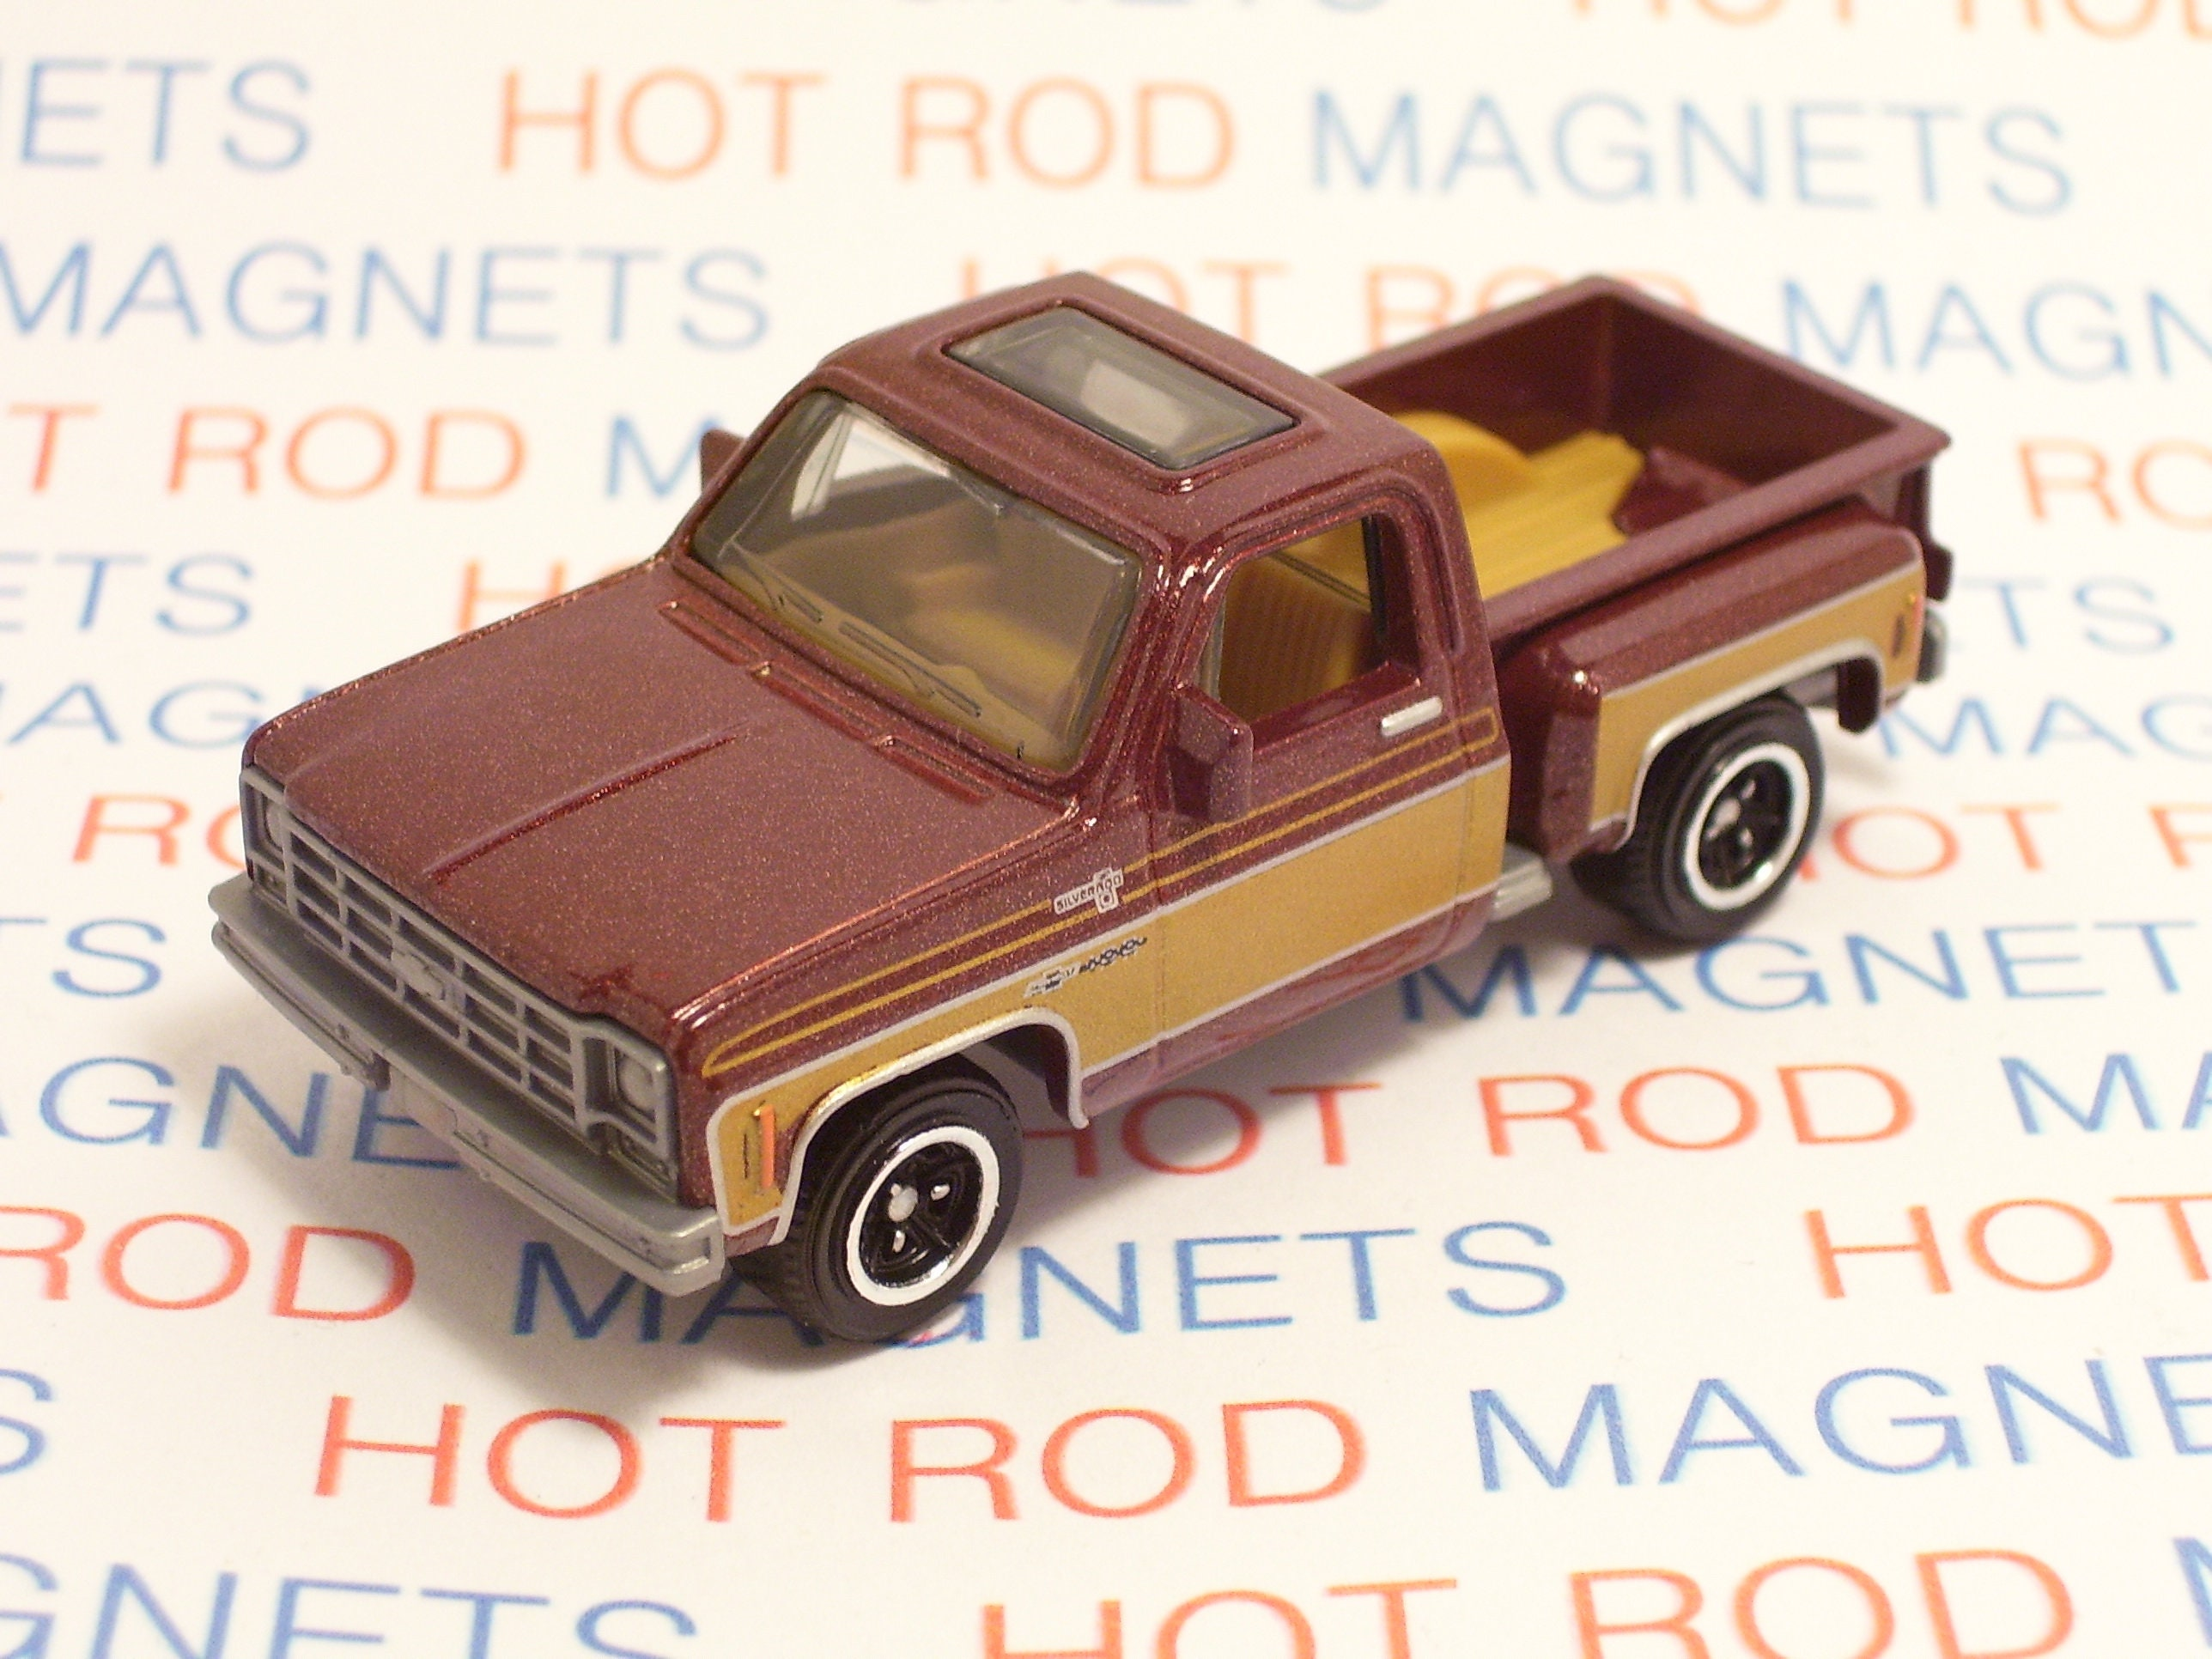 1975 Chevrolet Stepside Pickup Truck Hot Rod Man Cave